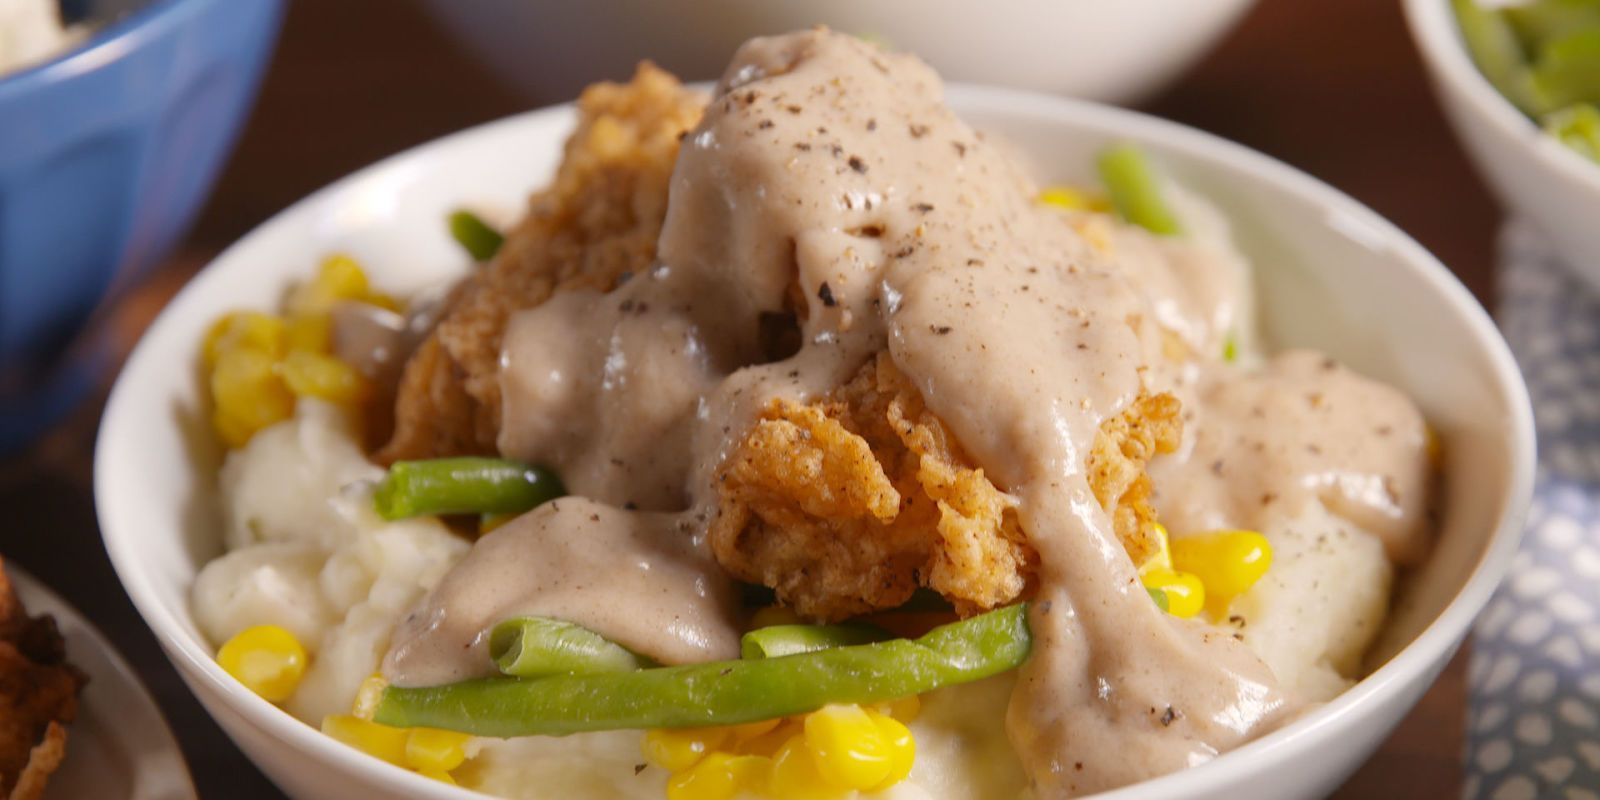 A Serious Time-Saving Hack To Making These Chicken Fried Steak Bowls Chicken nuggets are great, but have you ever tried chicken-fried steak nuggets?!Days Like These  Days Like These may refer to: